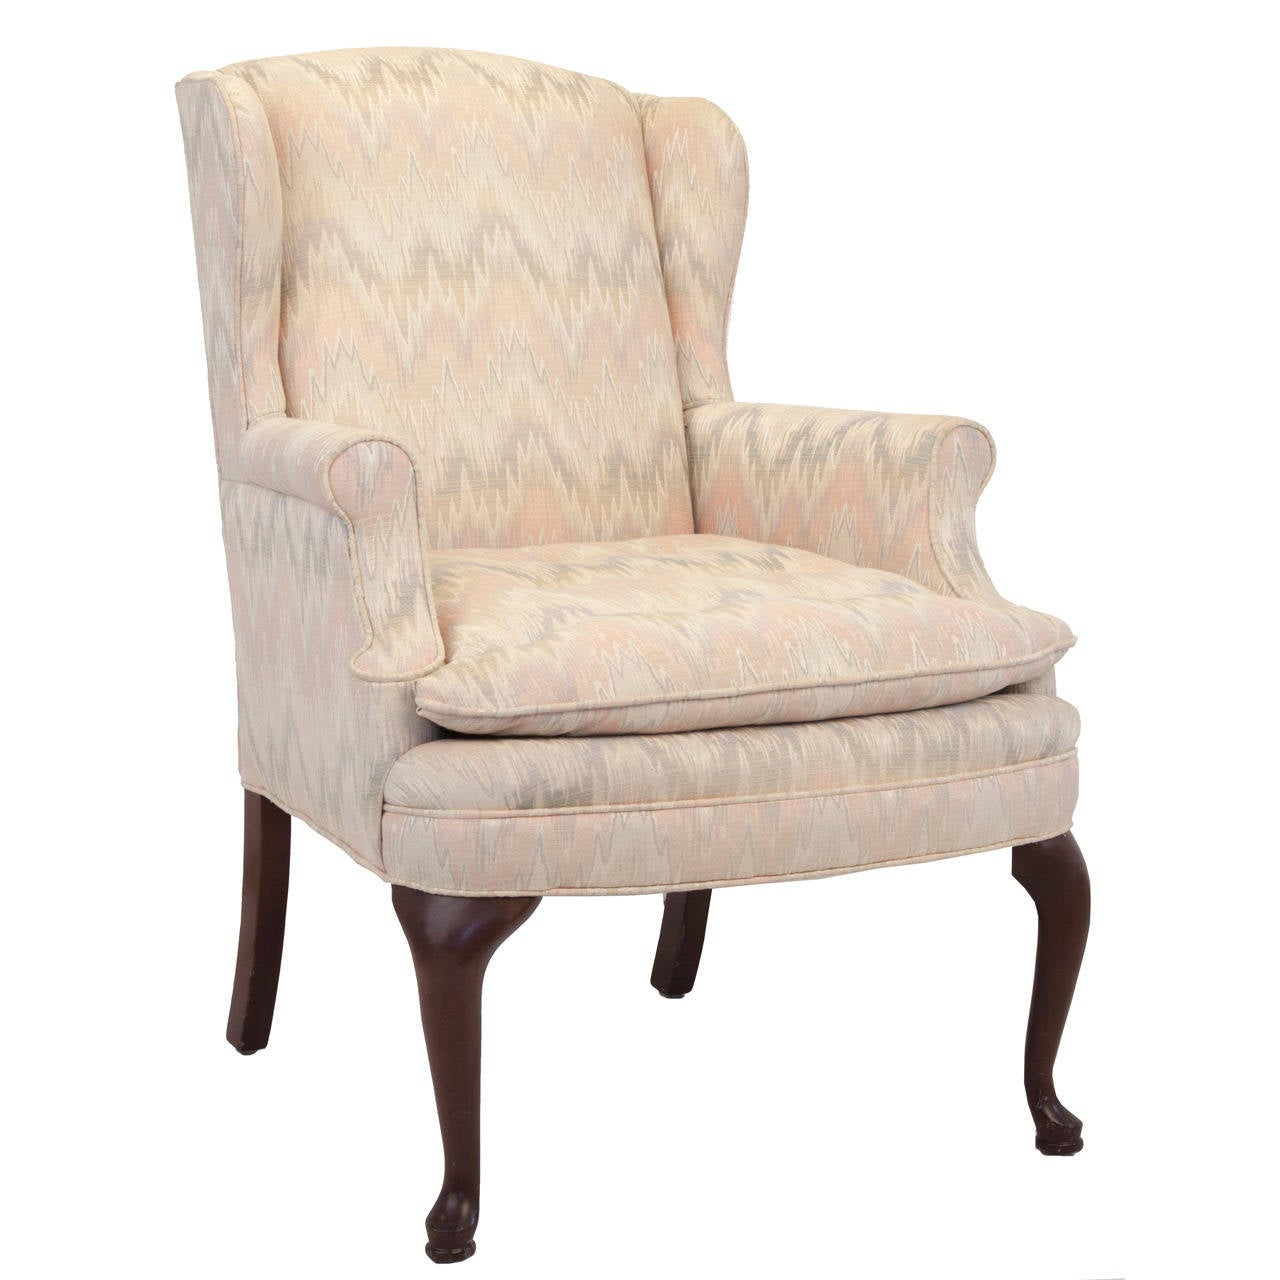 Queen Anne Style Upholstered Wing Chair 1Queen Anne Style Upholstered Wing Chair For Sale at 1stdibs. Antique Queen Anne Upholstered Chairs. Home Design Ideas